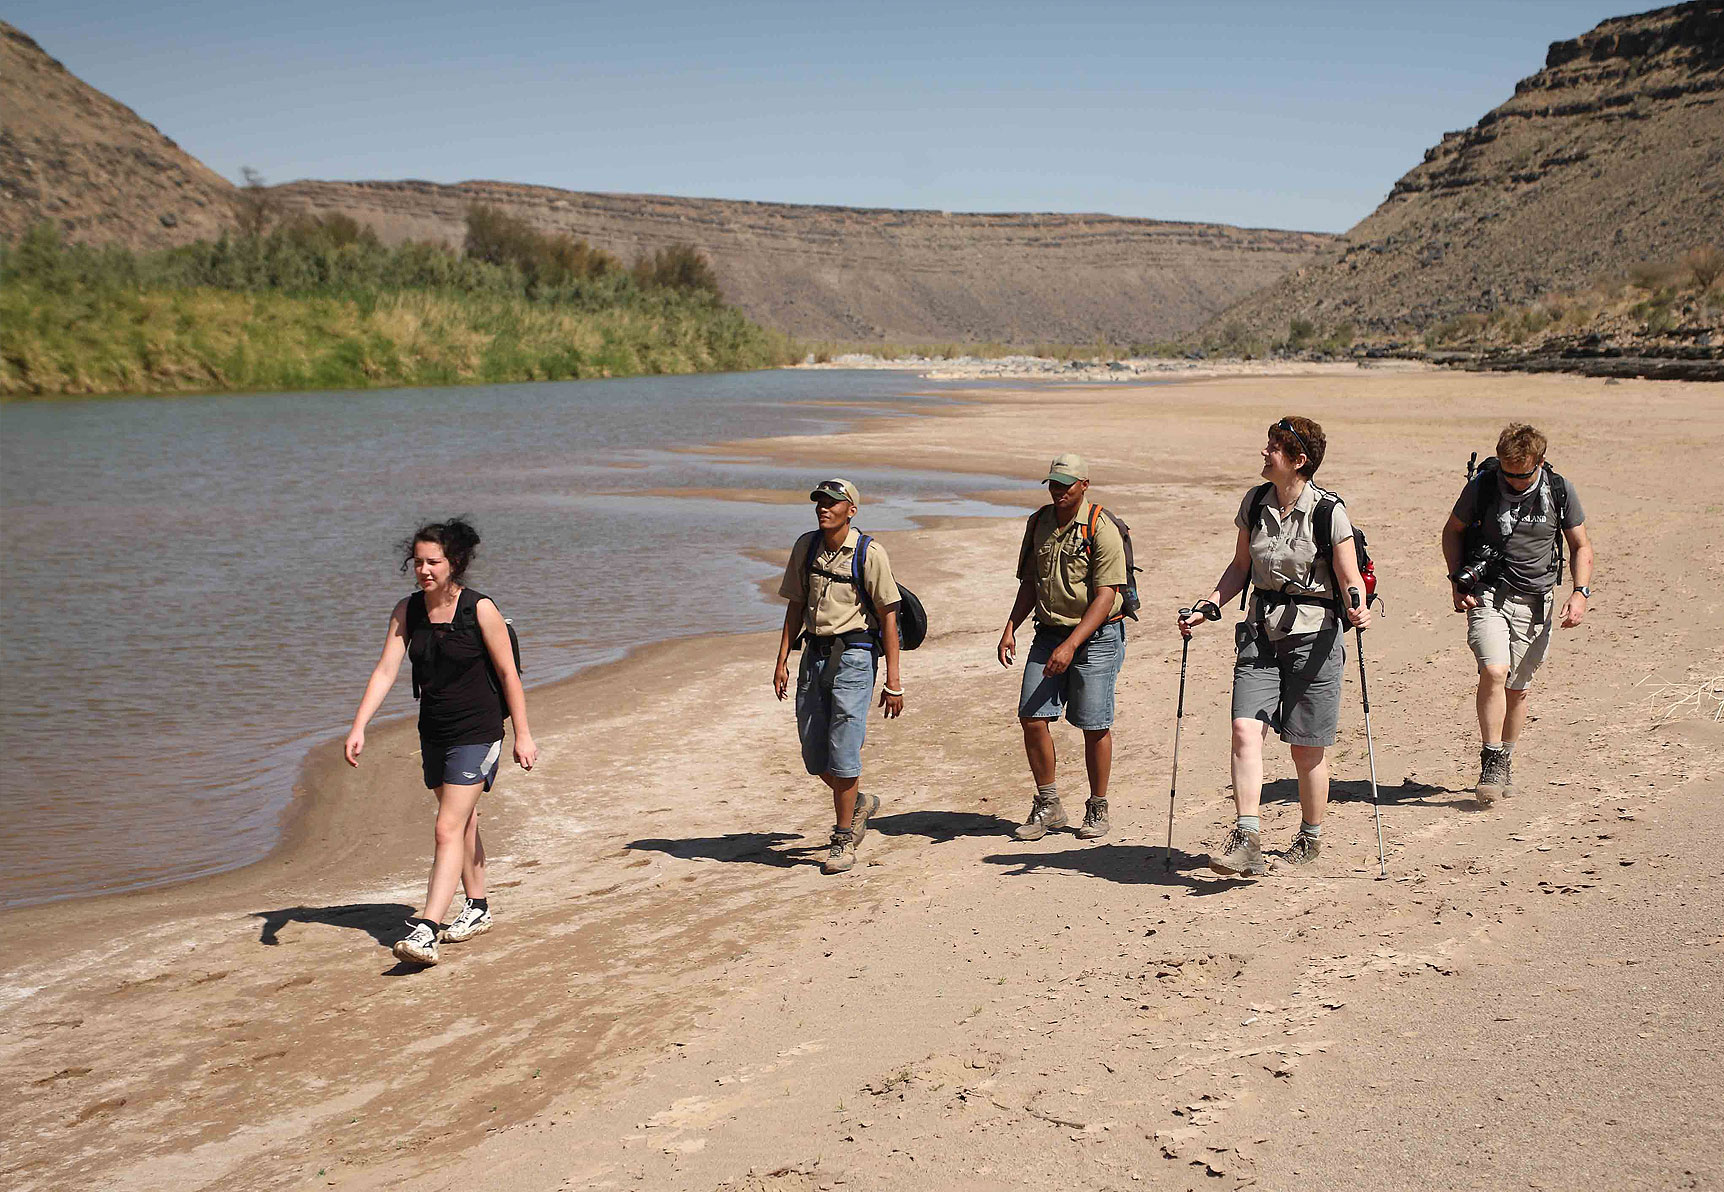 Top 10 Things To Do in Namibia inline image 5bfd0a16ca480